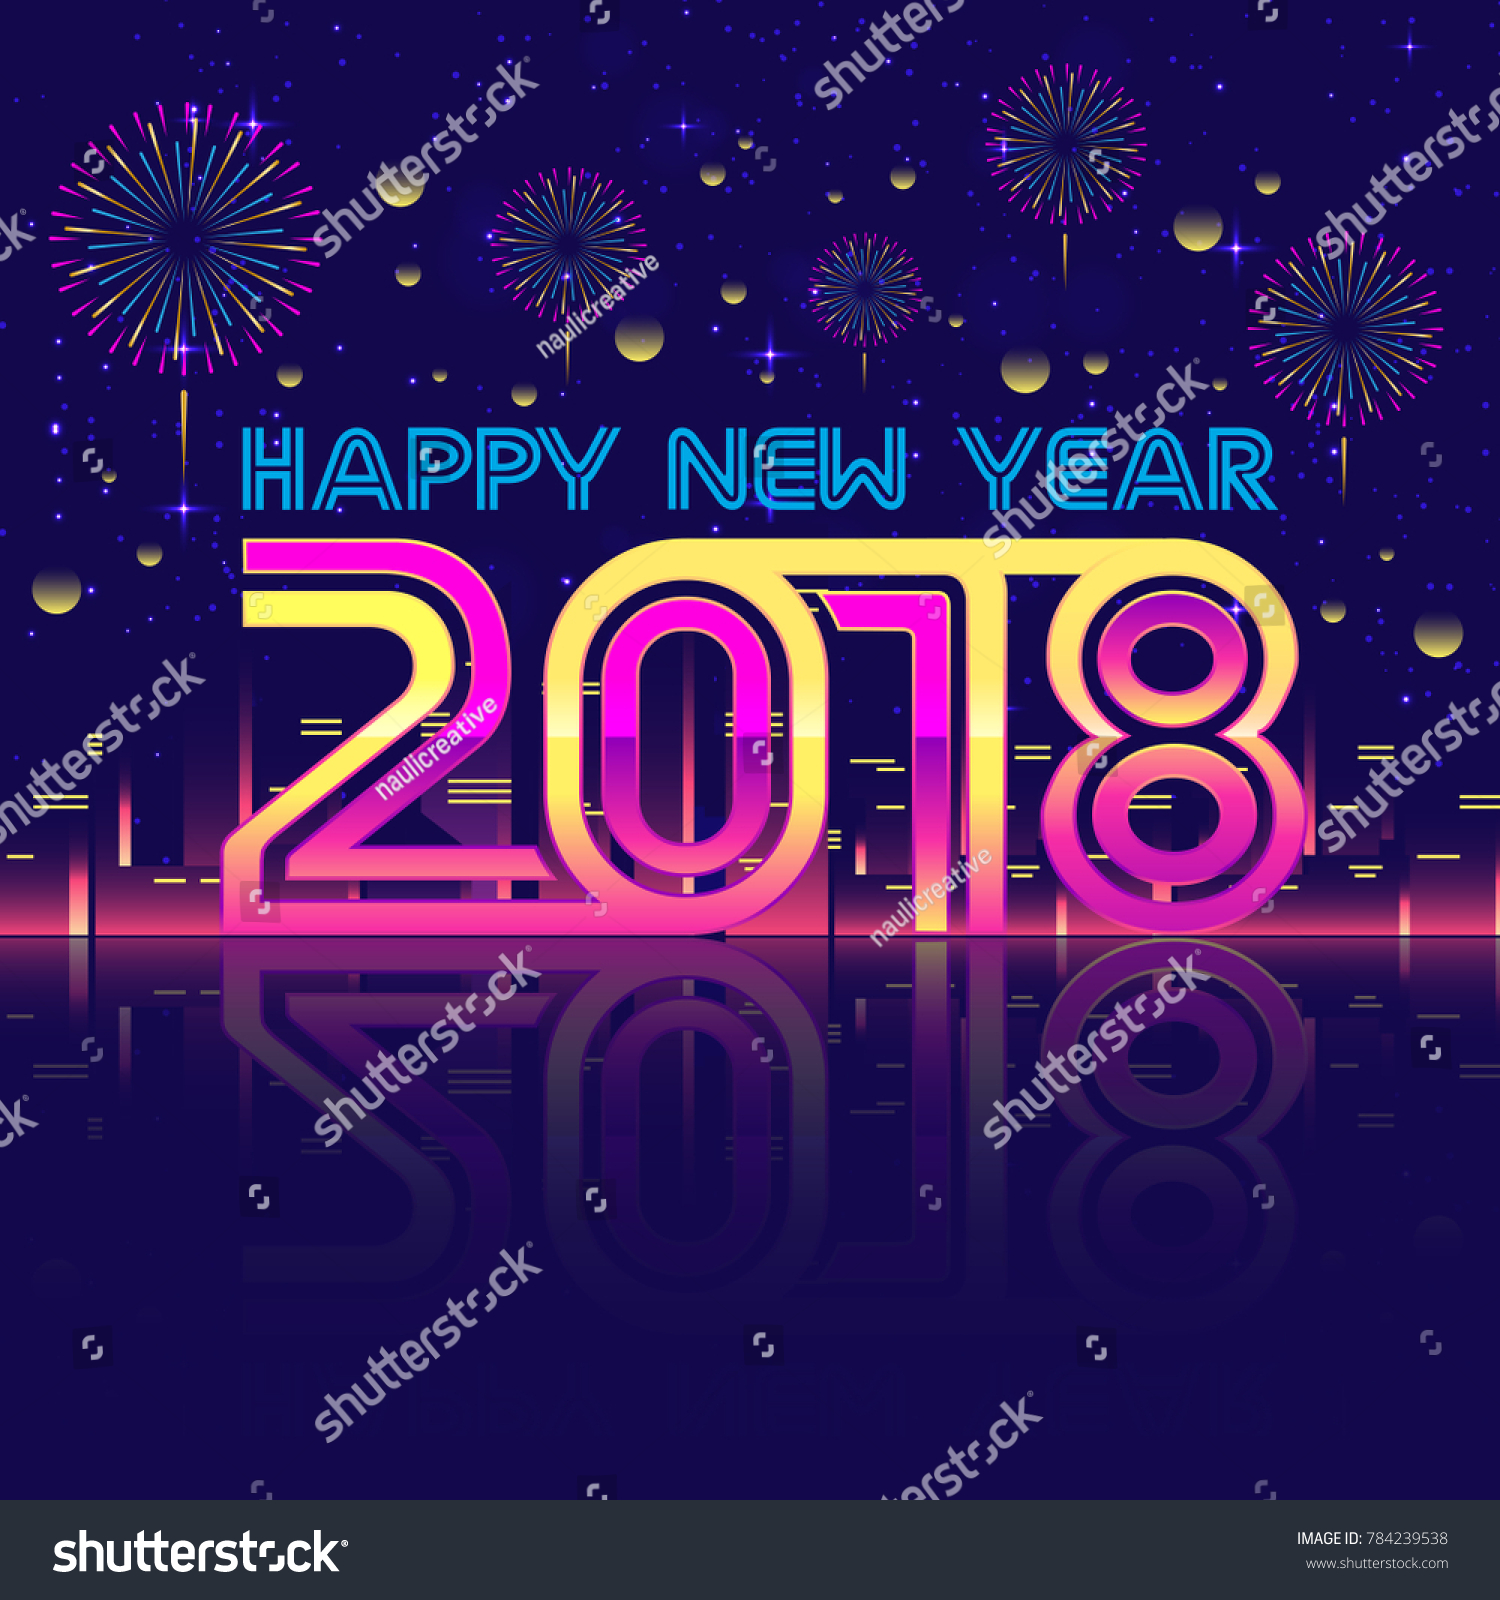 modern happy new year 2018 celebration card suitable for invitation web banner social